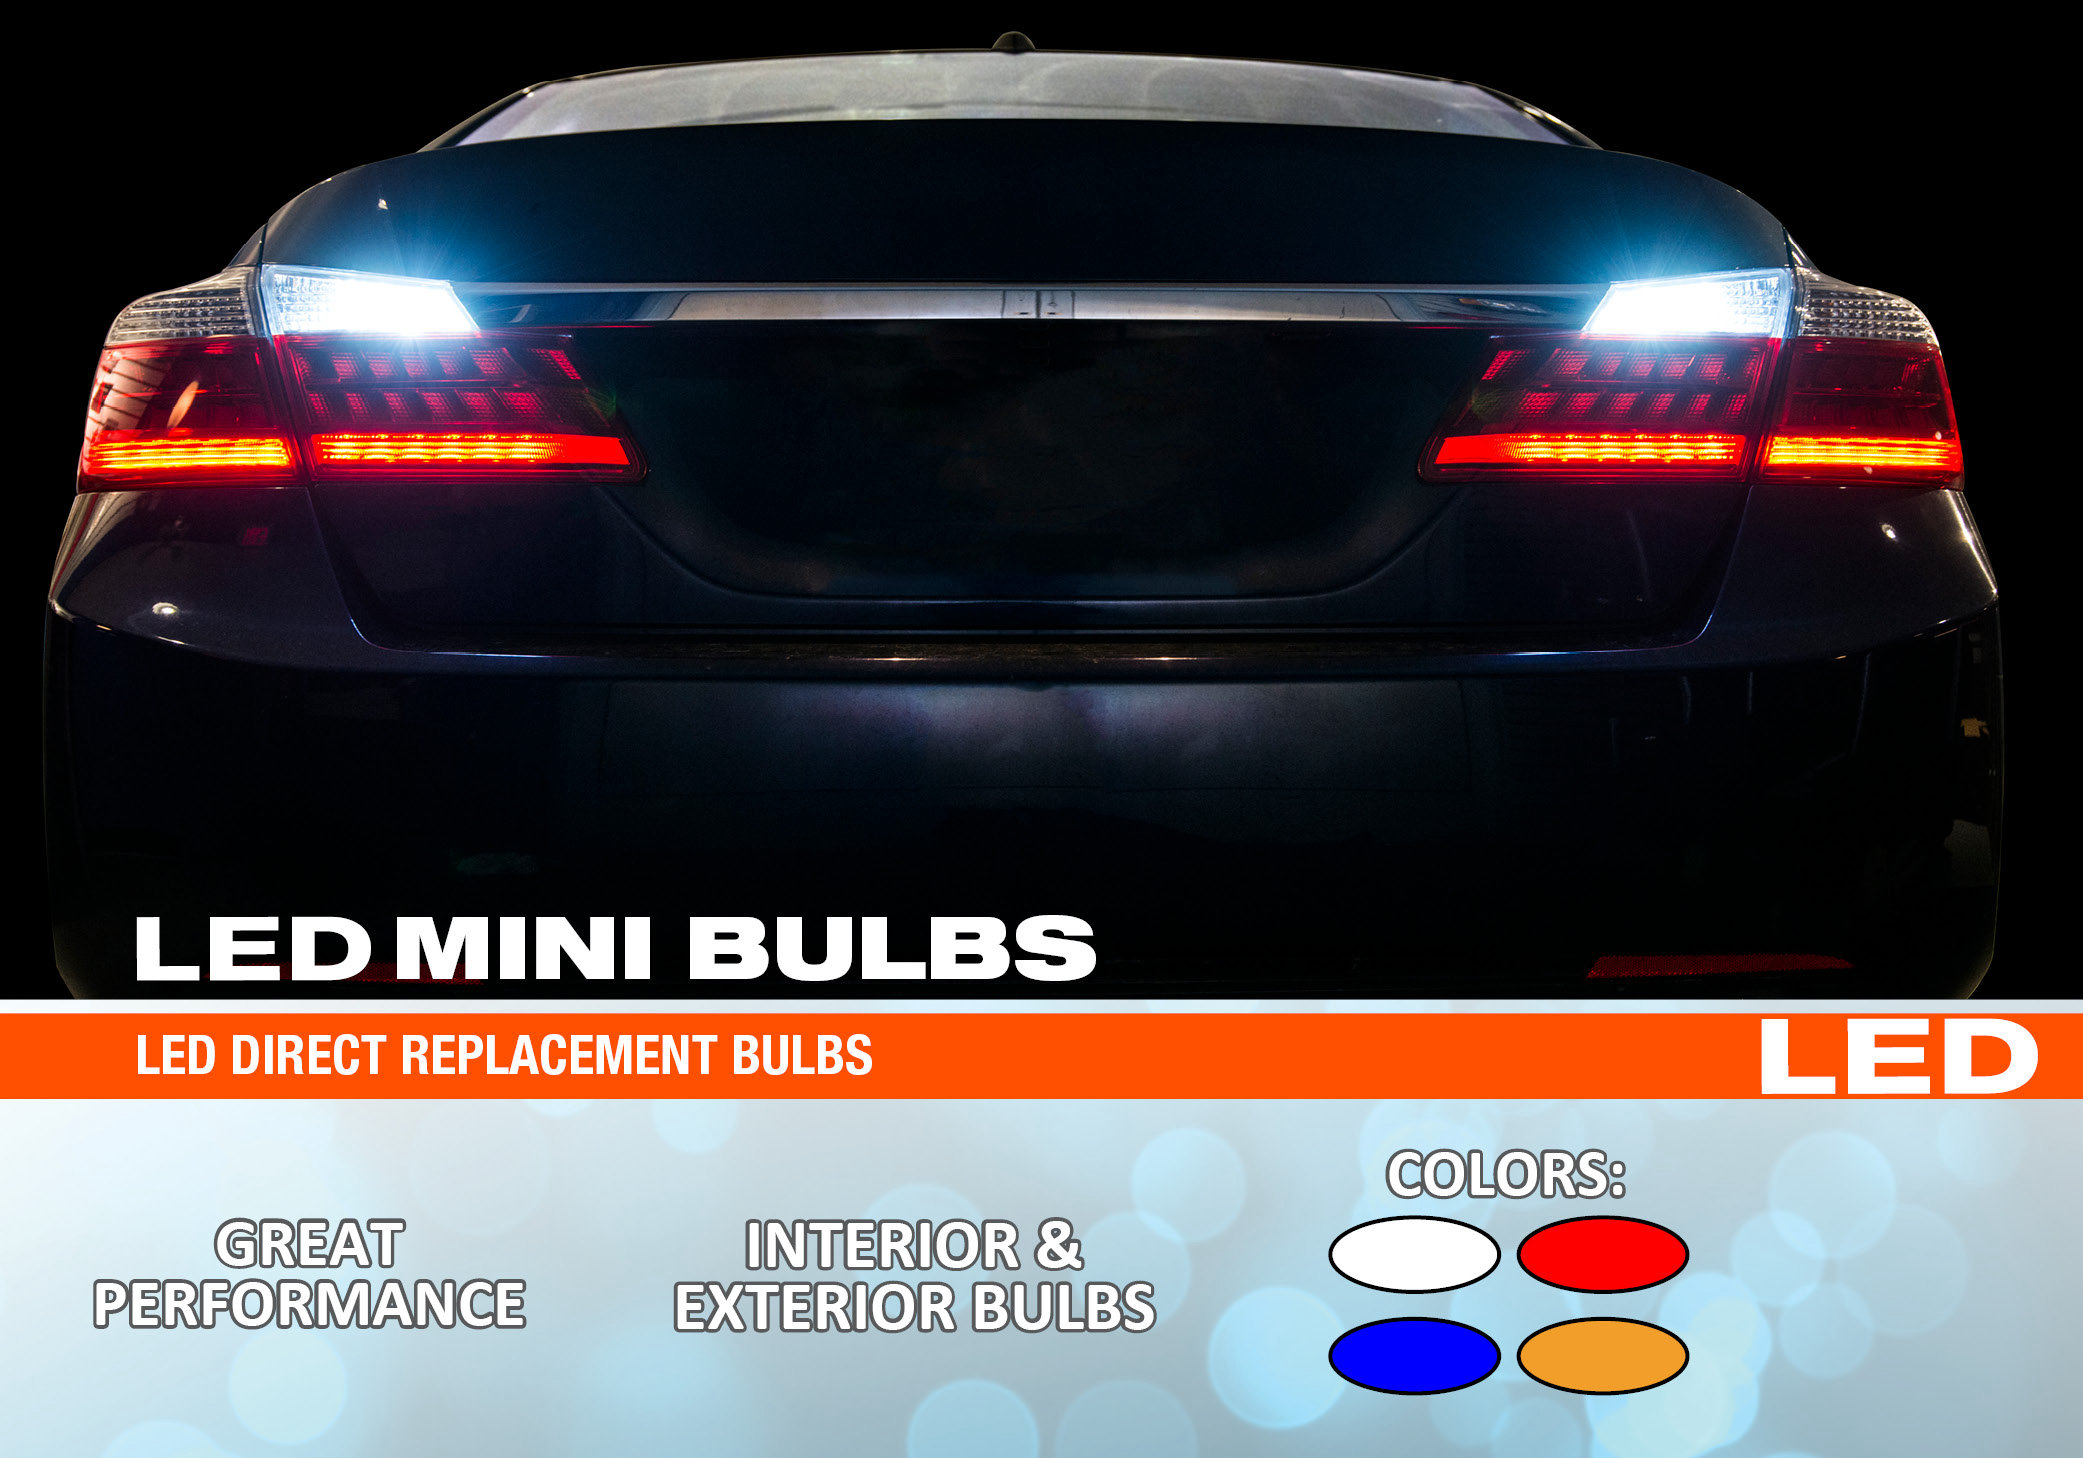 SYLVANIA LED Mini Bulbs - Value Style and Performance | SYLVANIA Automotive  sc 1 st  SYLVANIA Automotive & SYLVANIA LED Mini Bulbs - Value Style and Performance | SYLVANIA ... azcodes.com